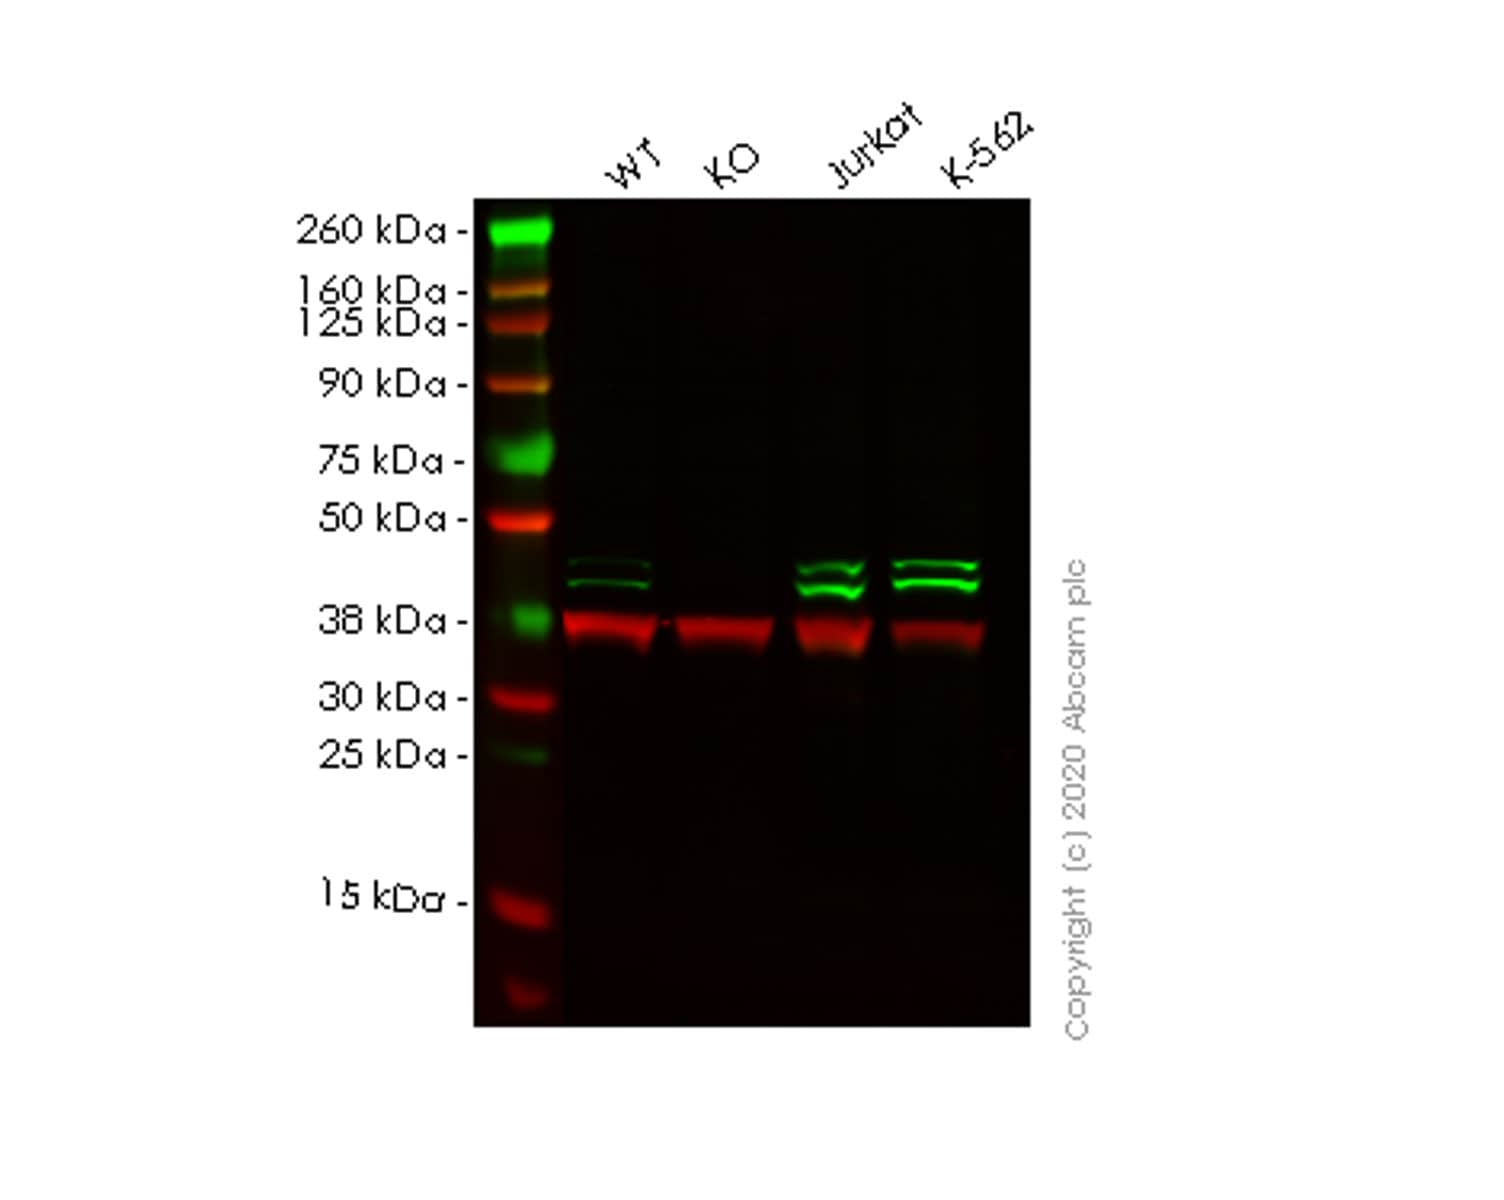 Western blot - Anti-TIA1 antibody [EPR9304] - BSA and Azide free (ab230829)